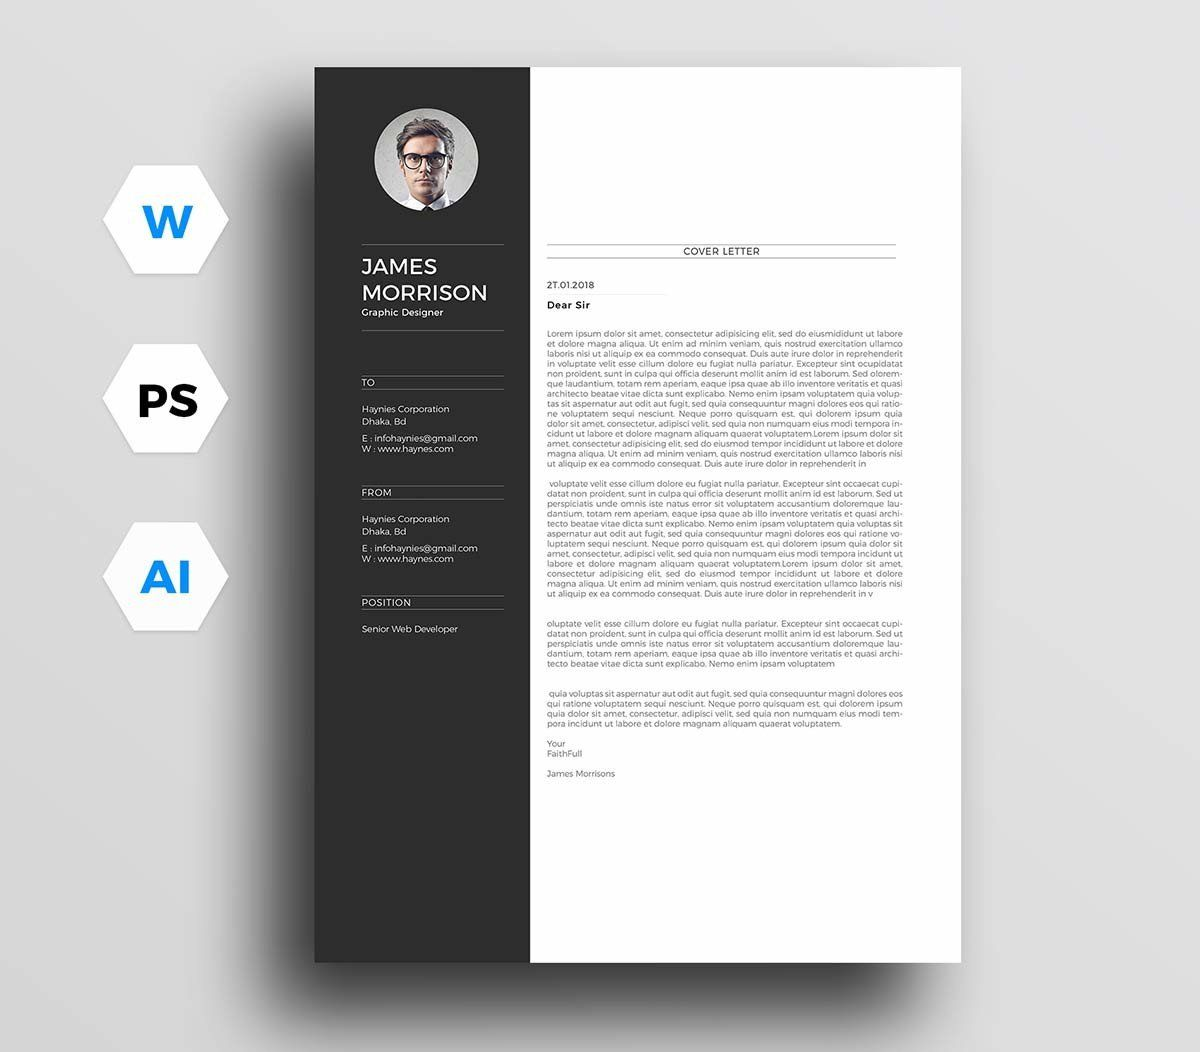 001 Unbelievable Microsoft Cover Letter Template Download High Resolution  Word FreeFull